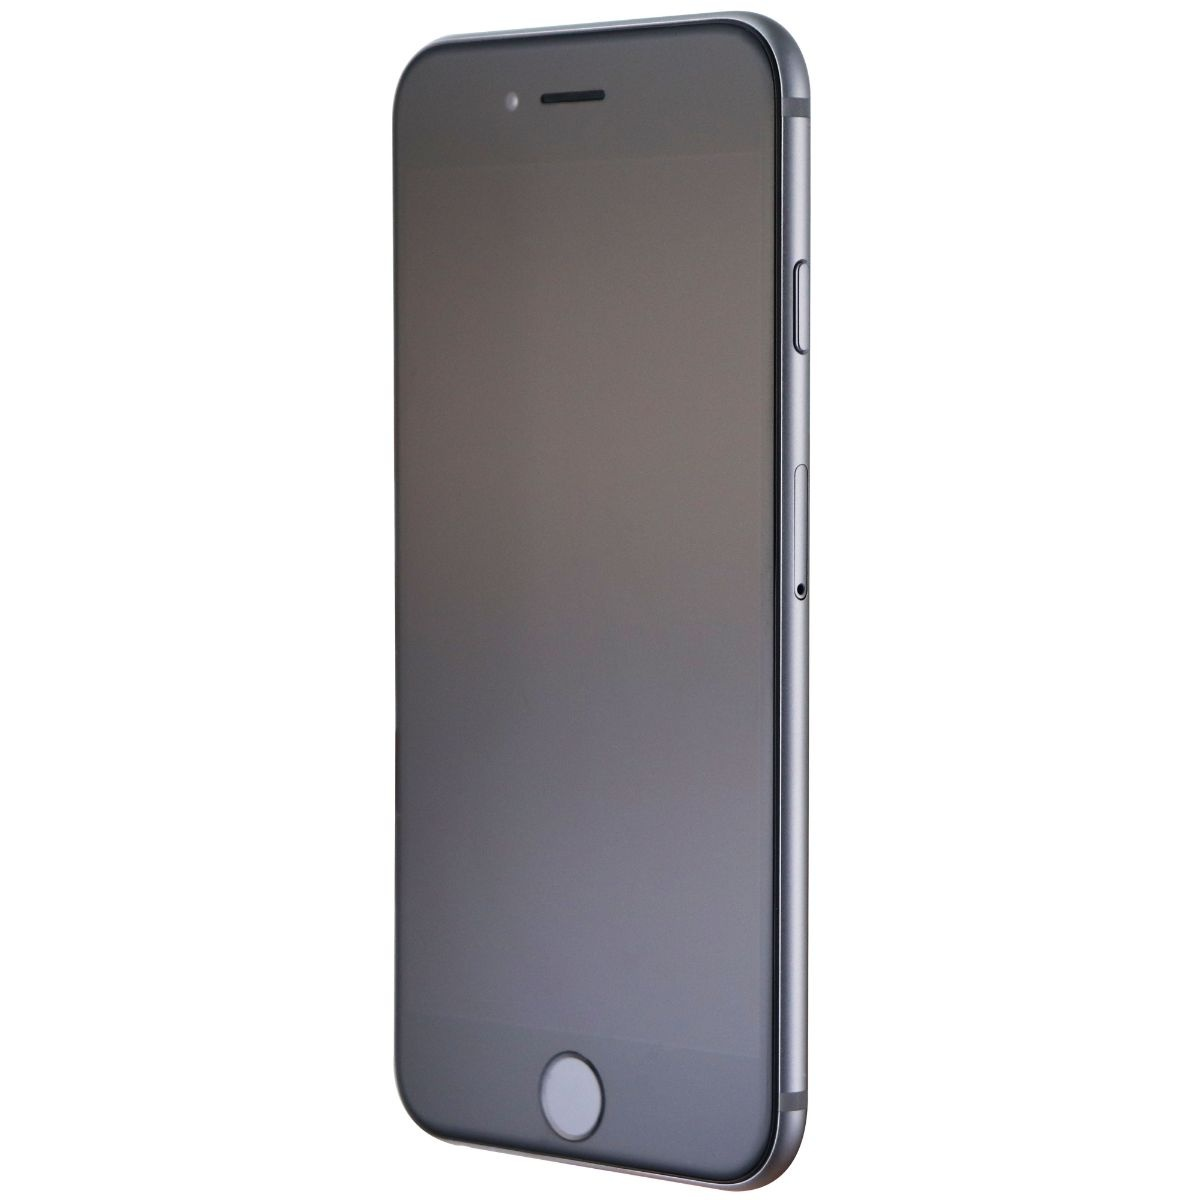 Apple iPhone 6 Smartphone A1549 (GSM Unlocked) - 32GB / Space Gray